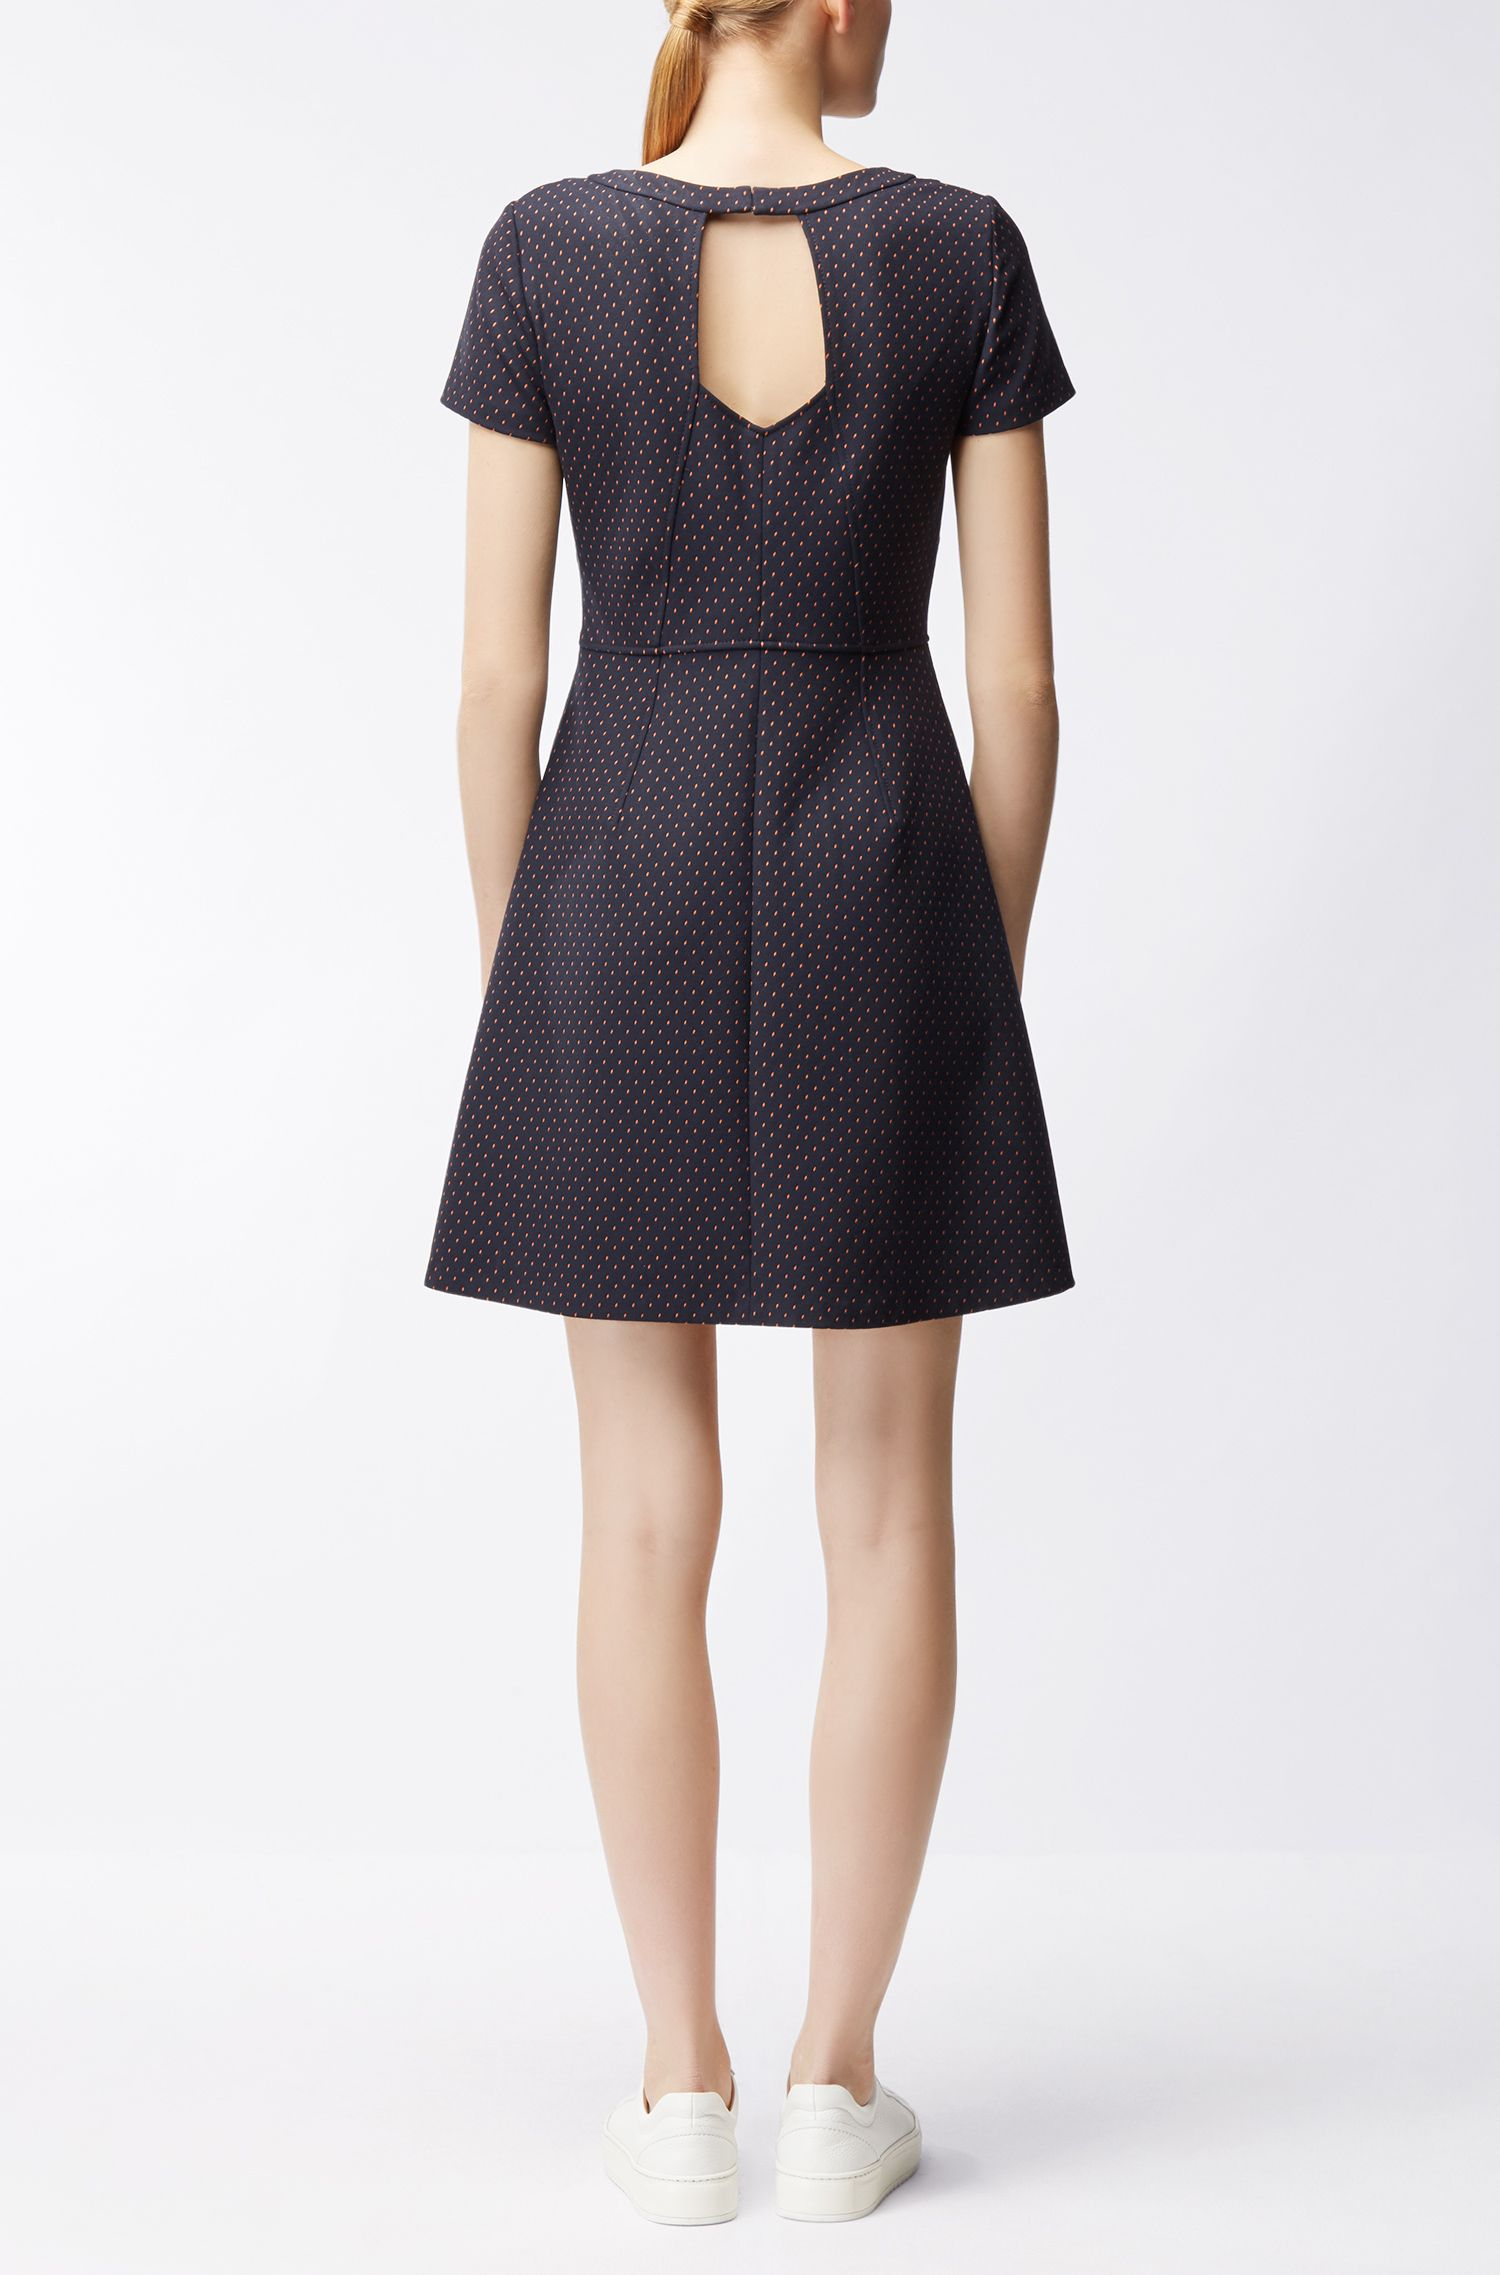 Waisted dress in patterned stretch fabric BOSS